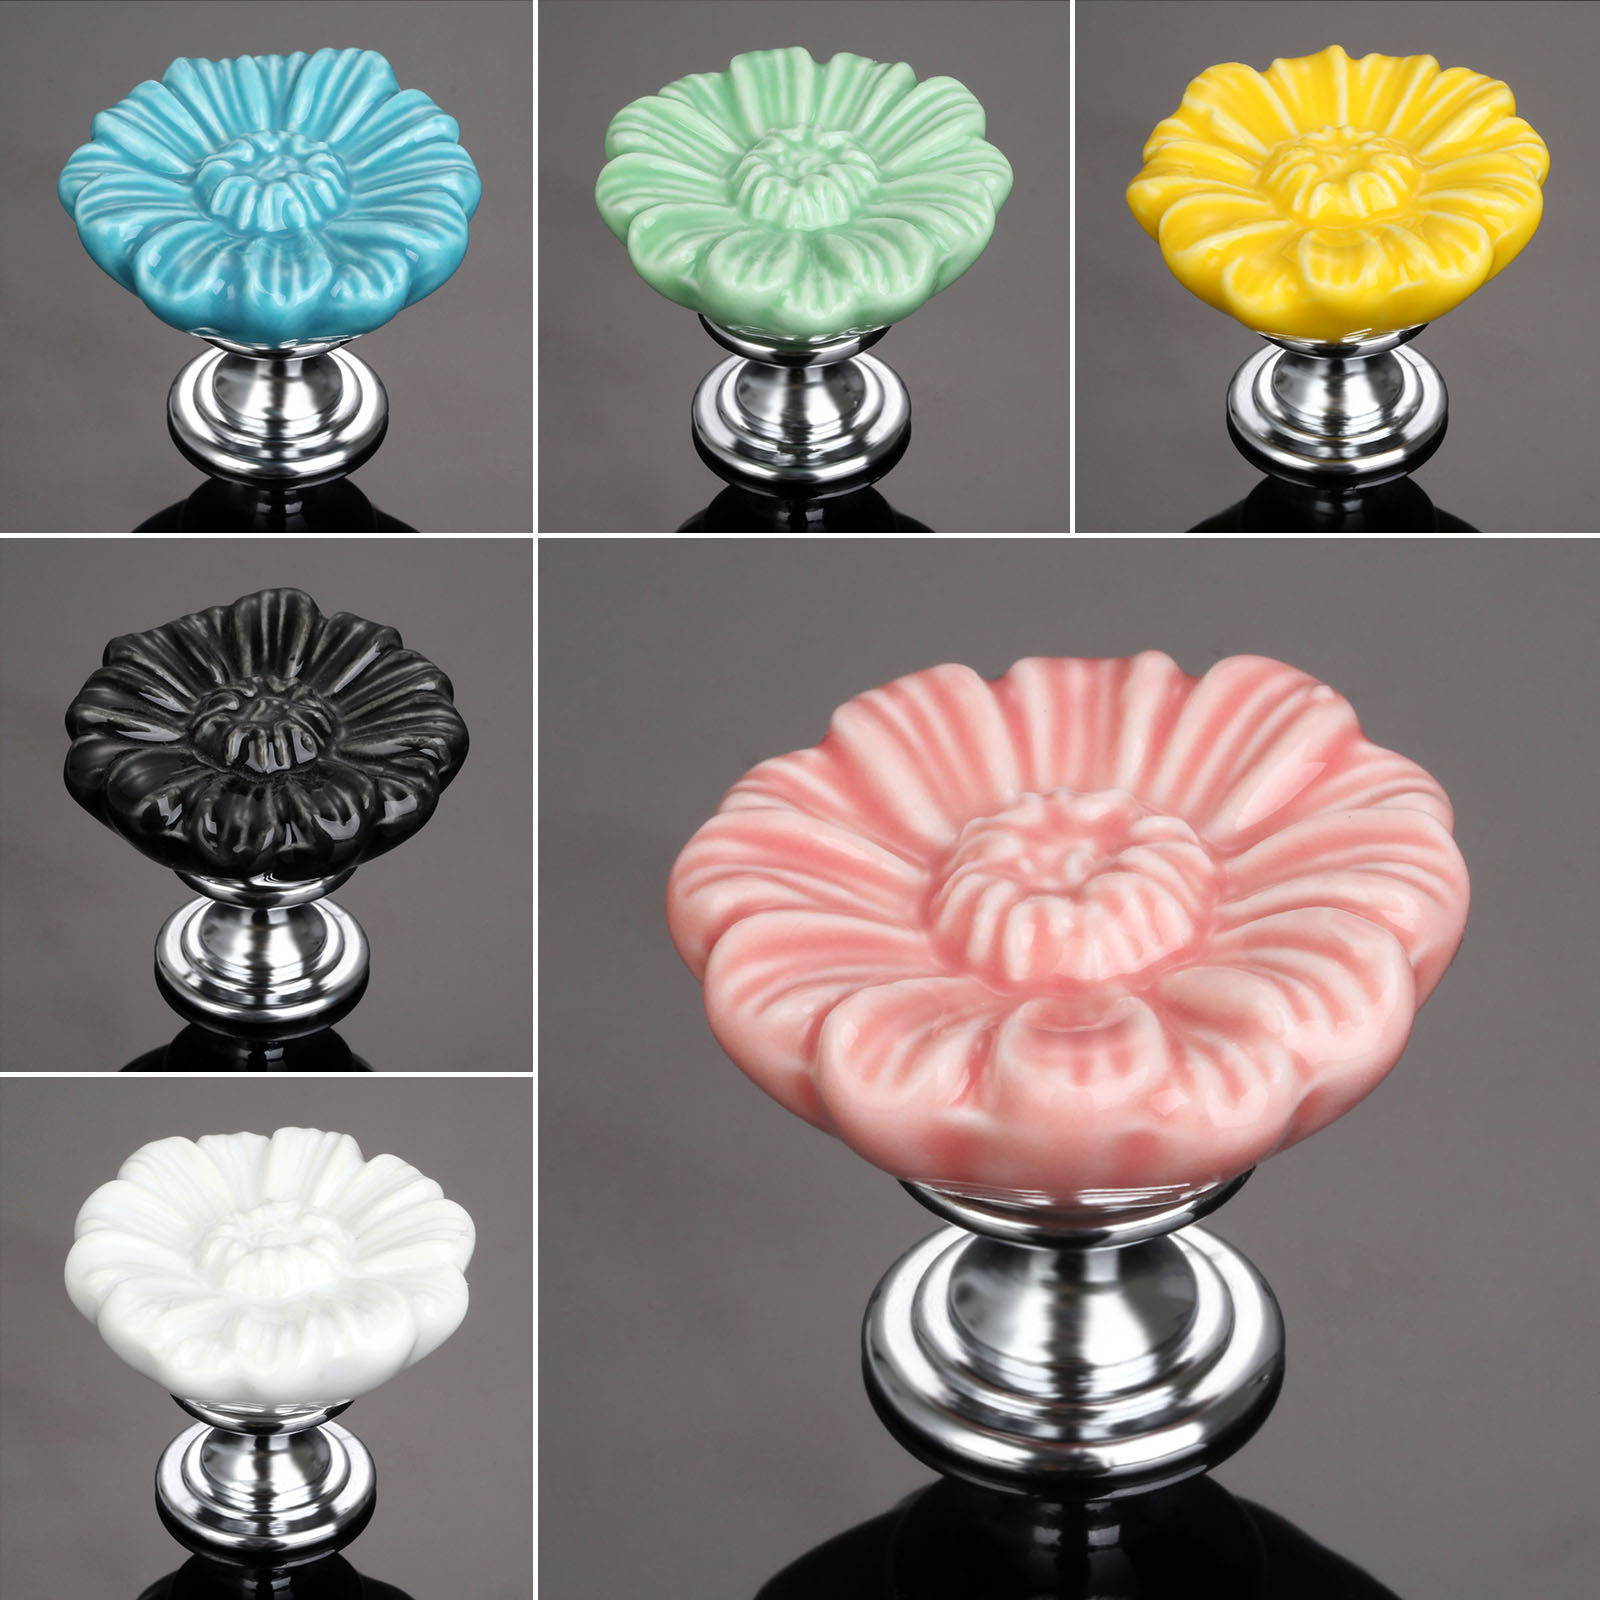 Furniture Handles Vintage Flower Cabinet Knobs and Handles Ceramic Door Knob Cupboard Drawer Kitchen Pull Handle